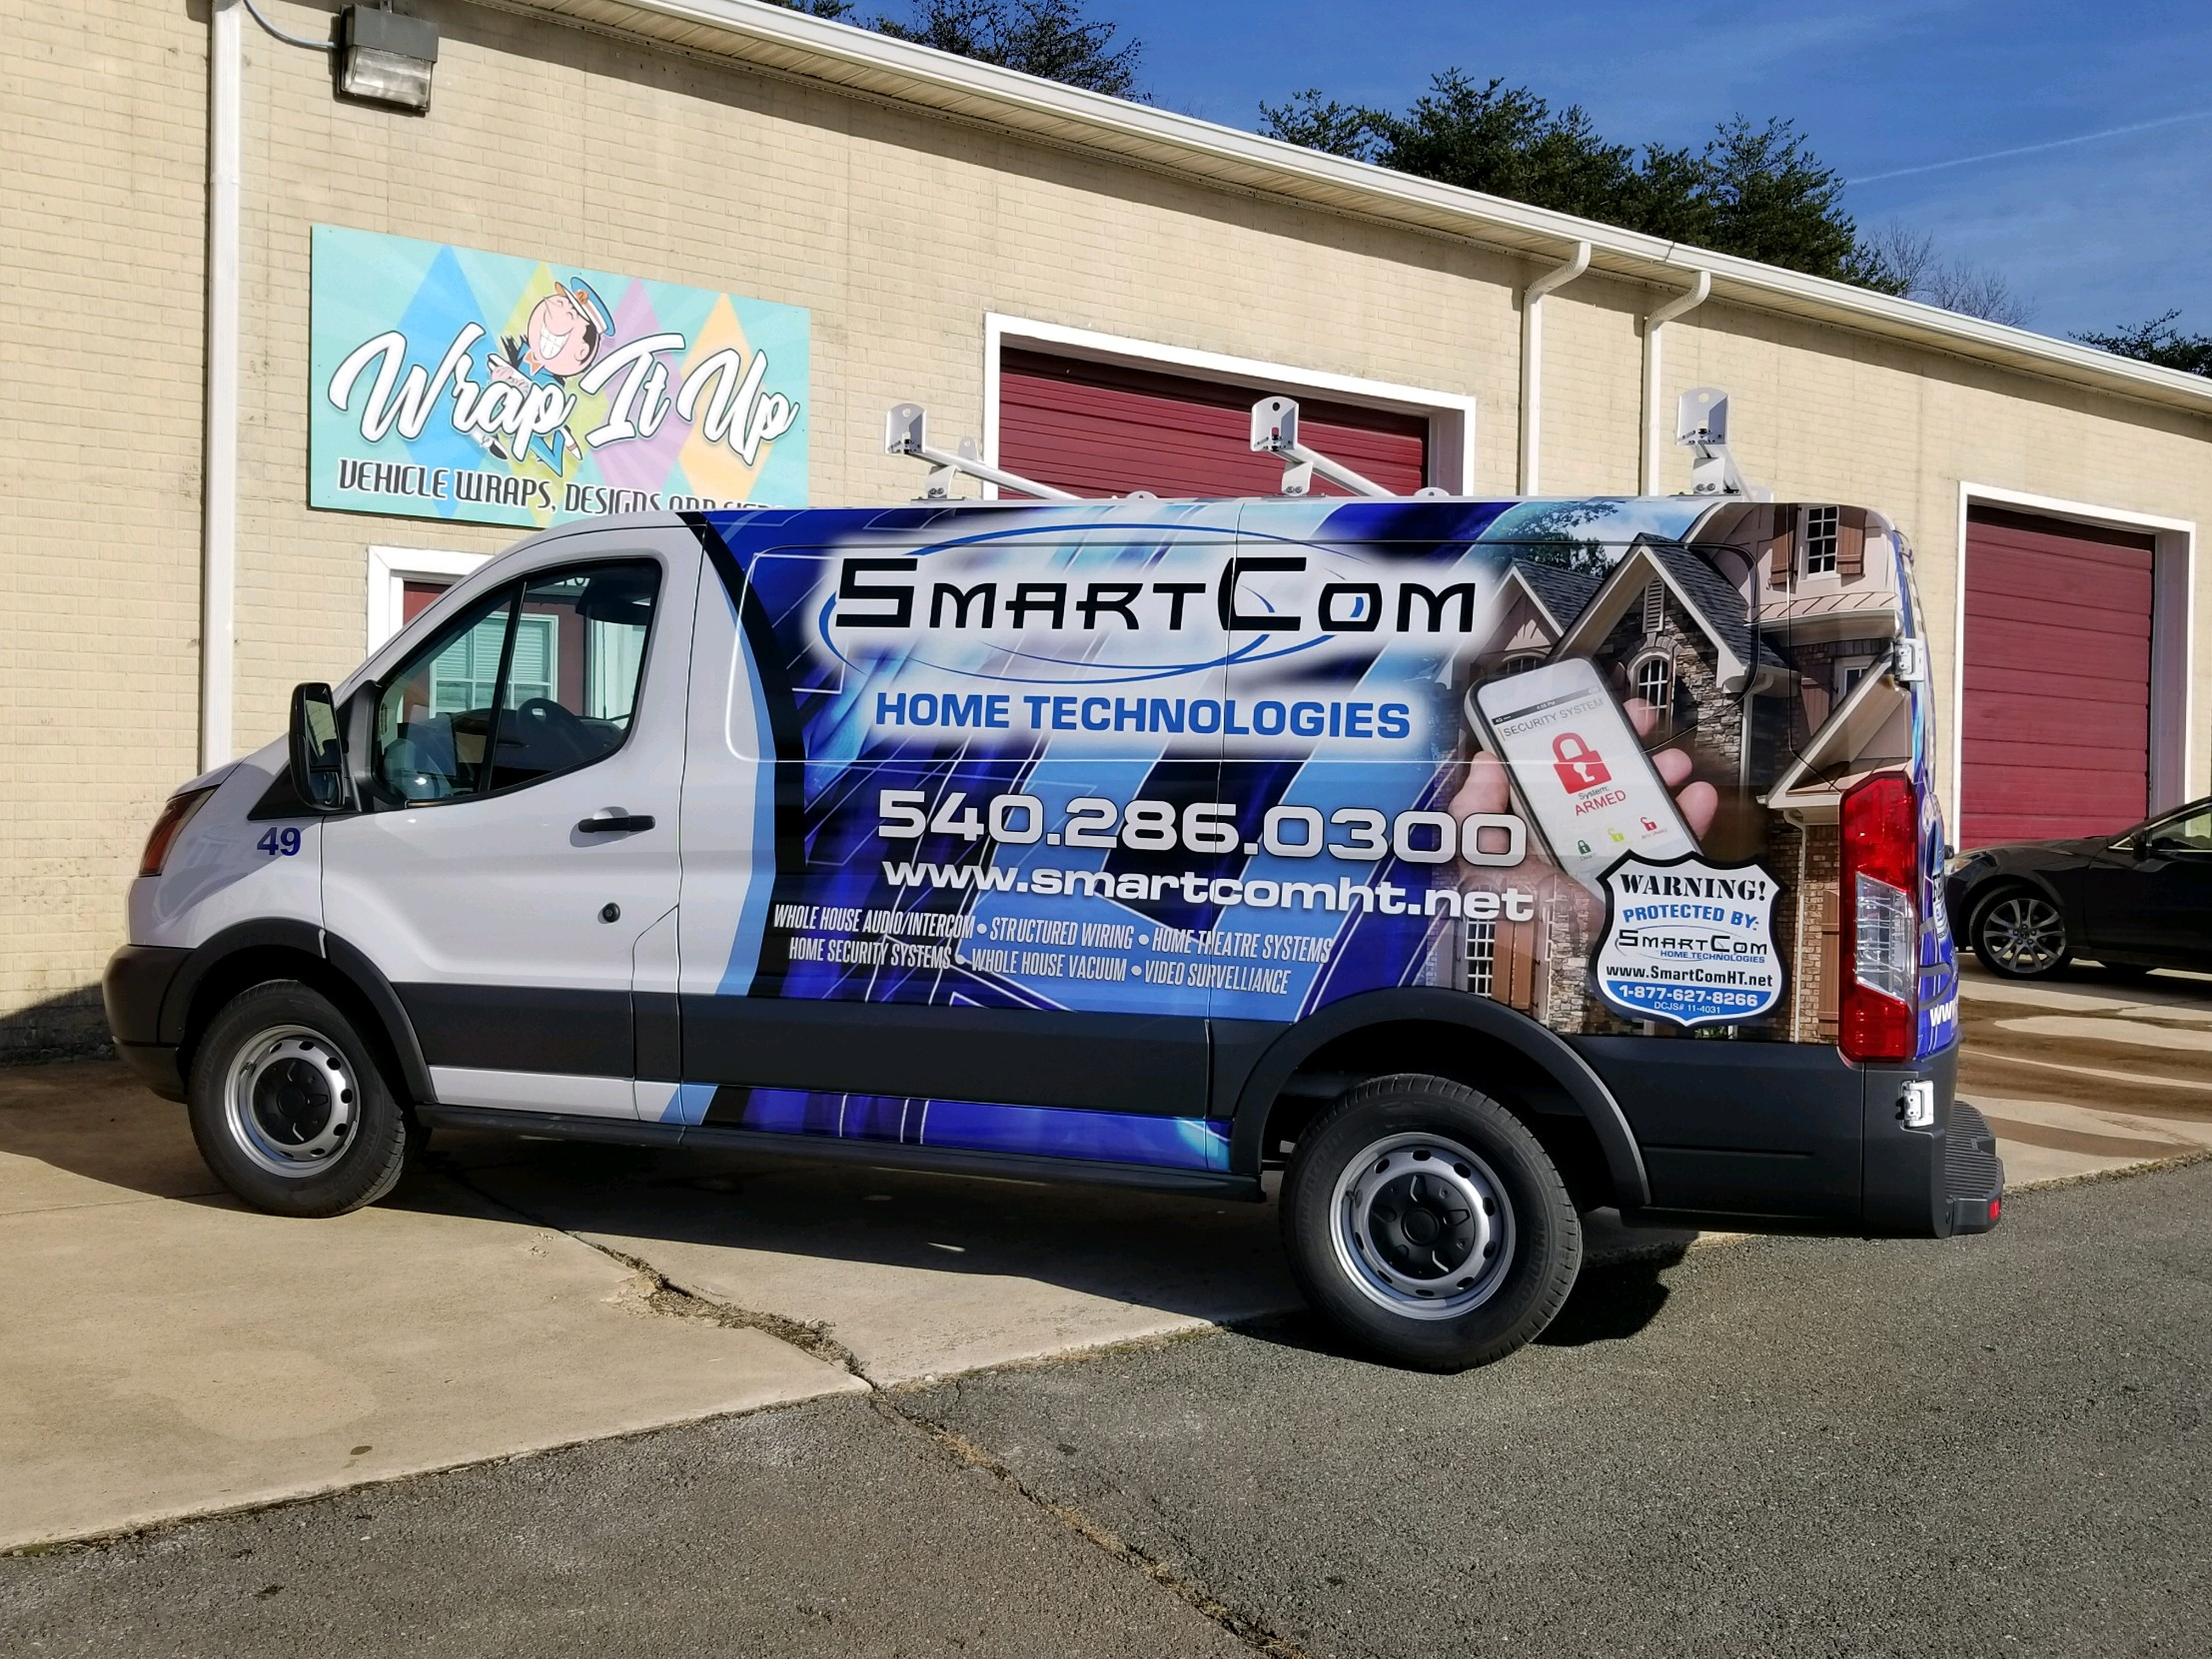 technology company wrapped van